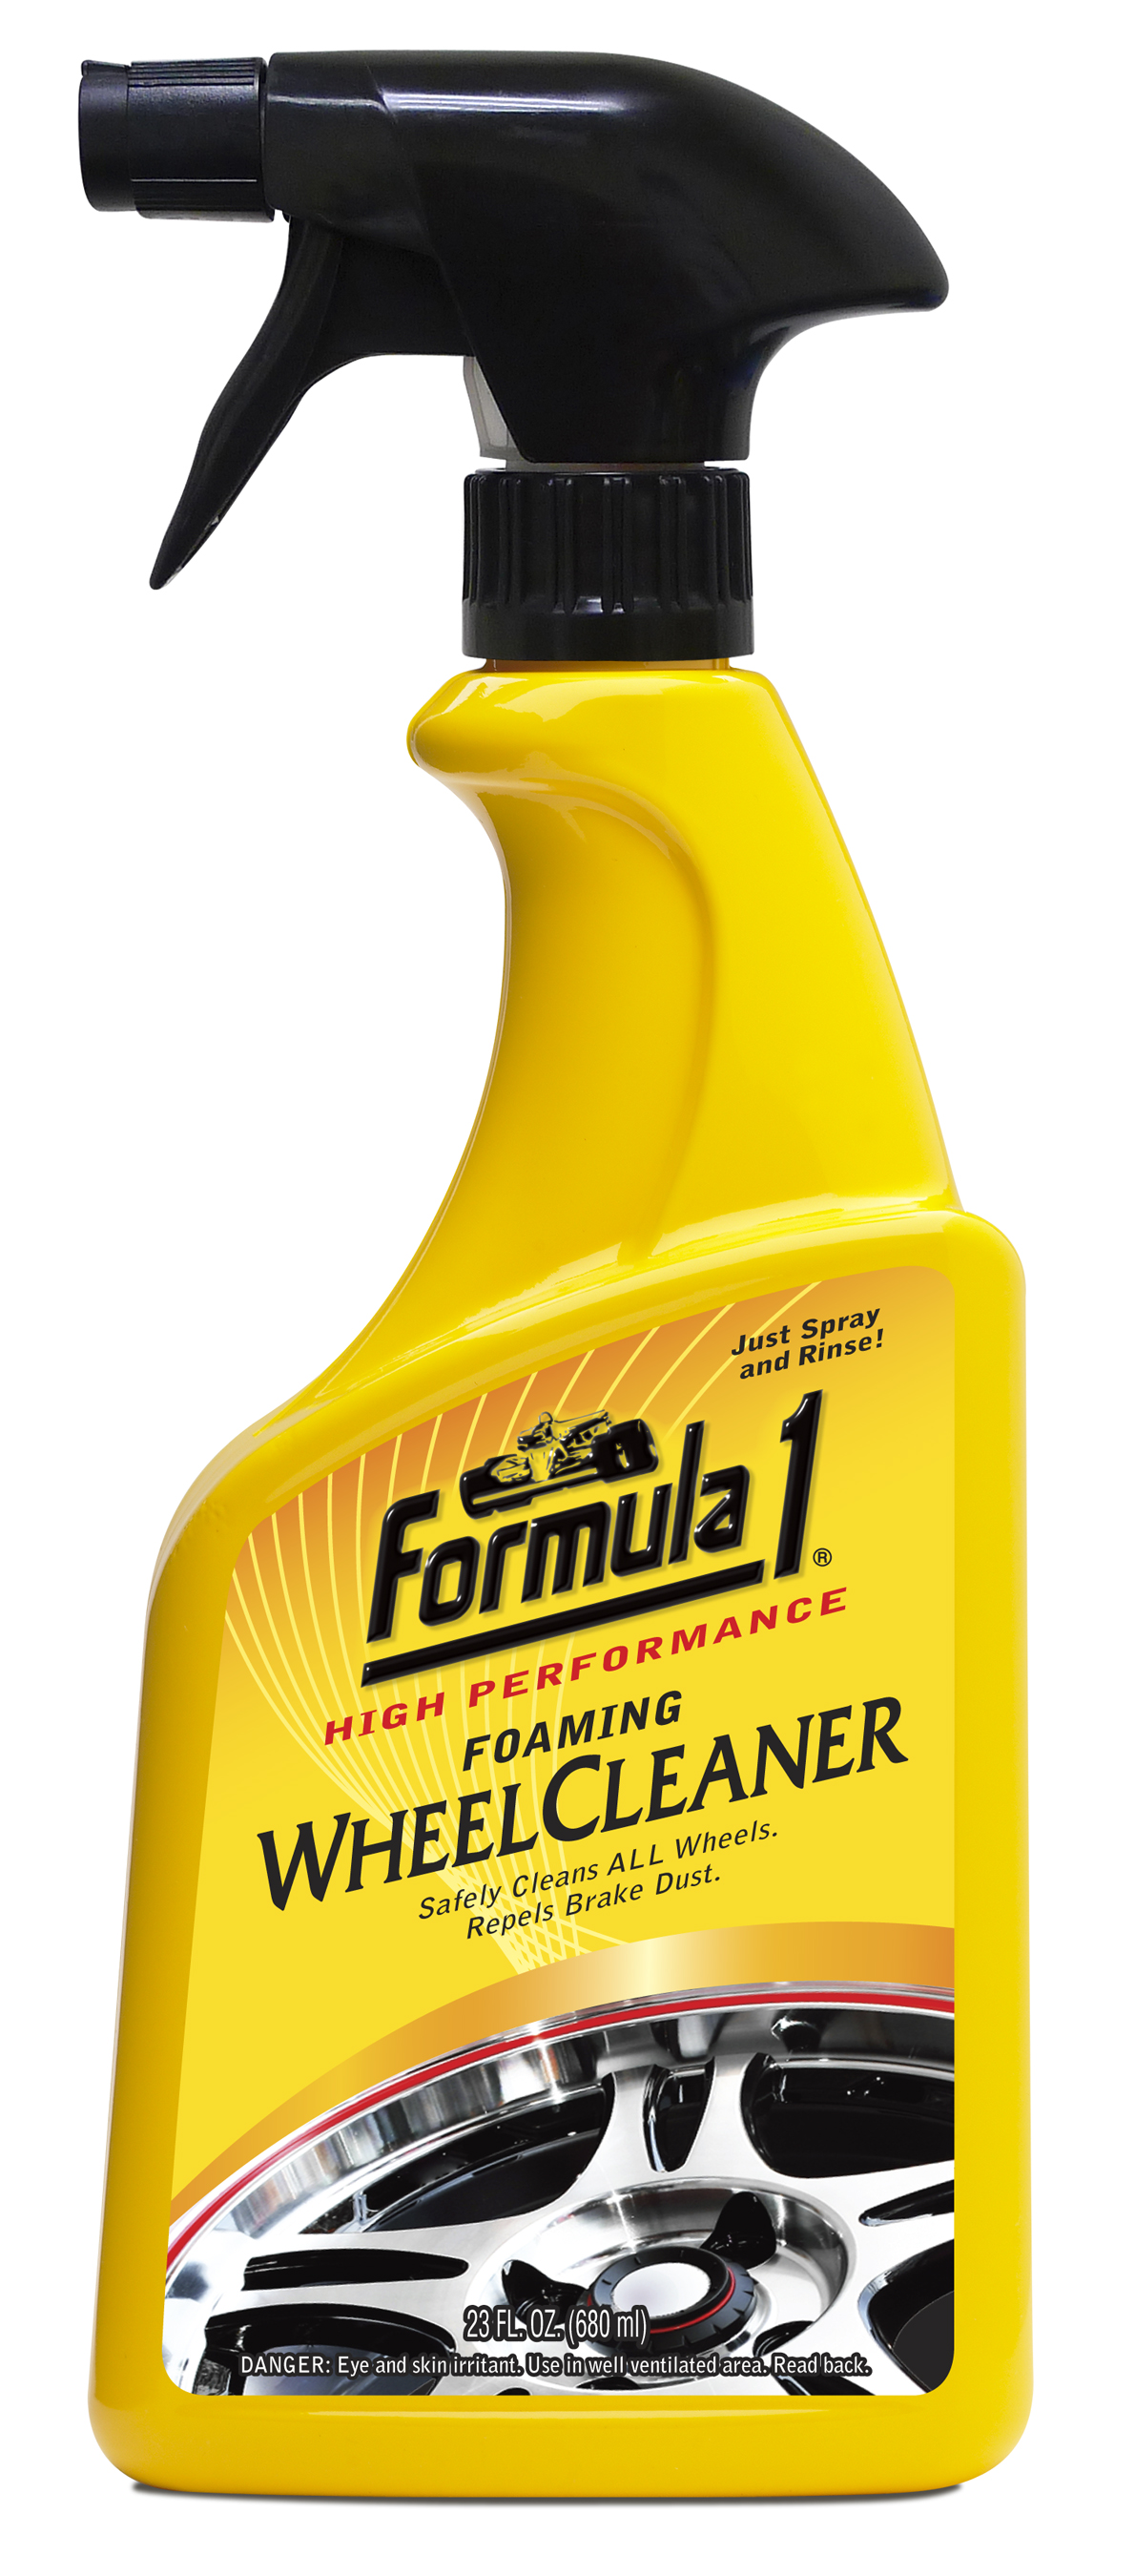 Wheel Cleaner Image